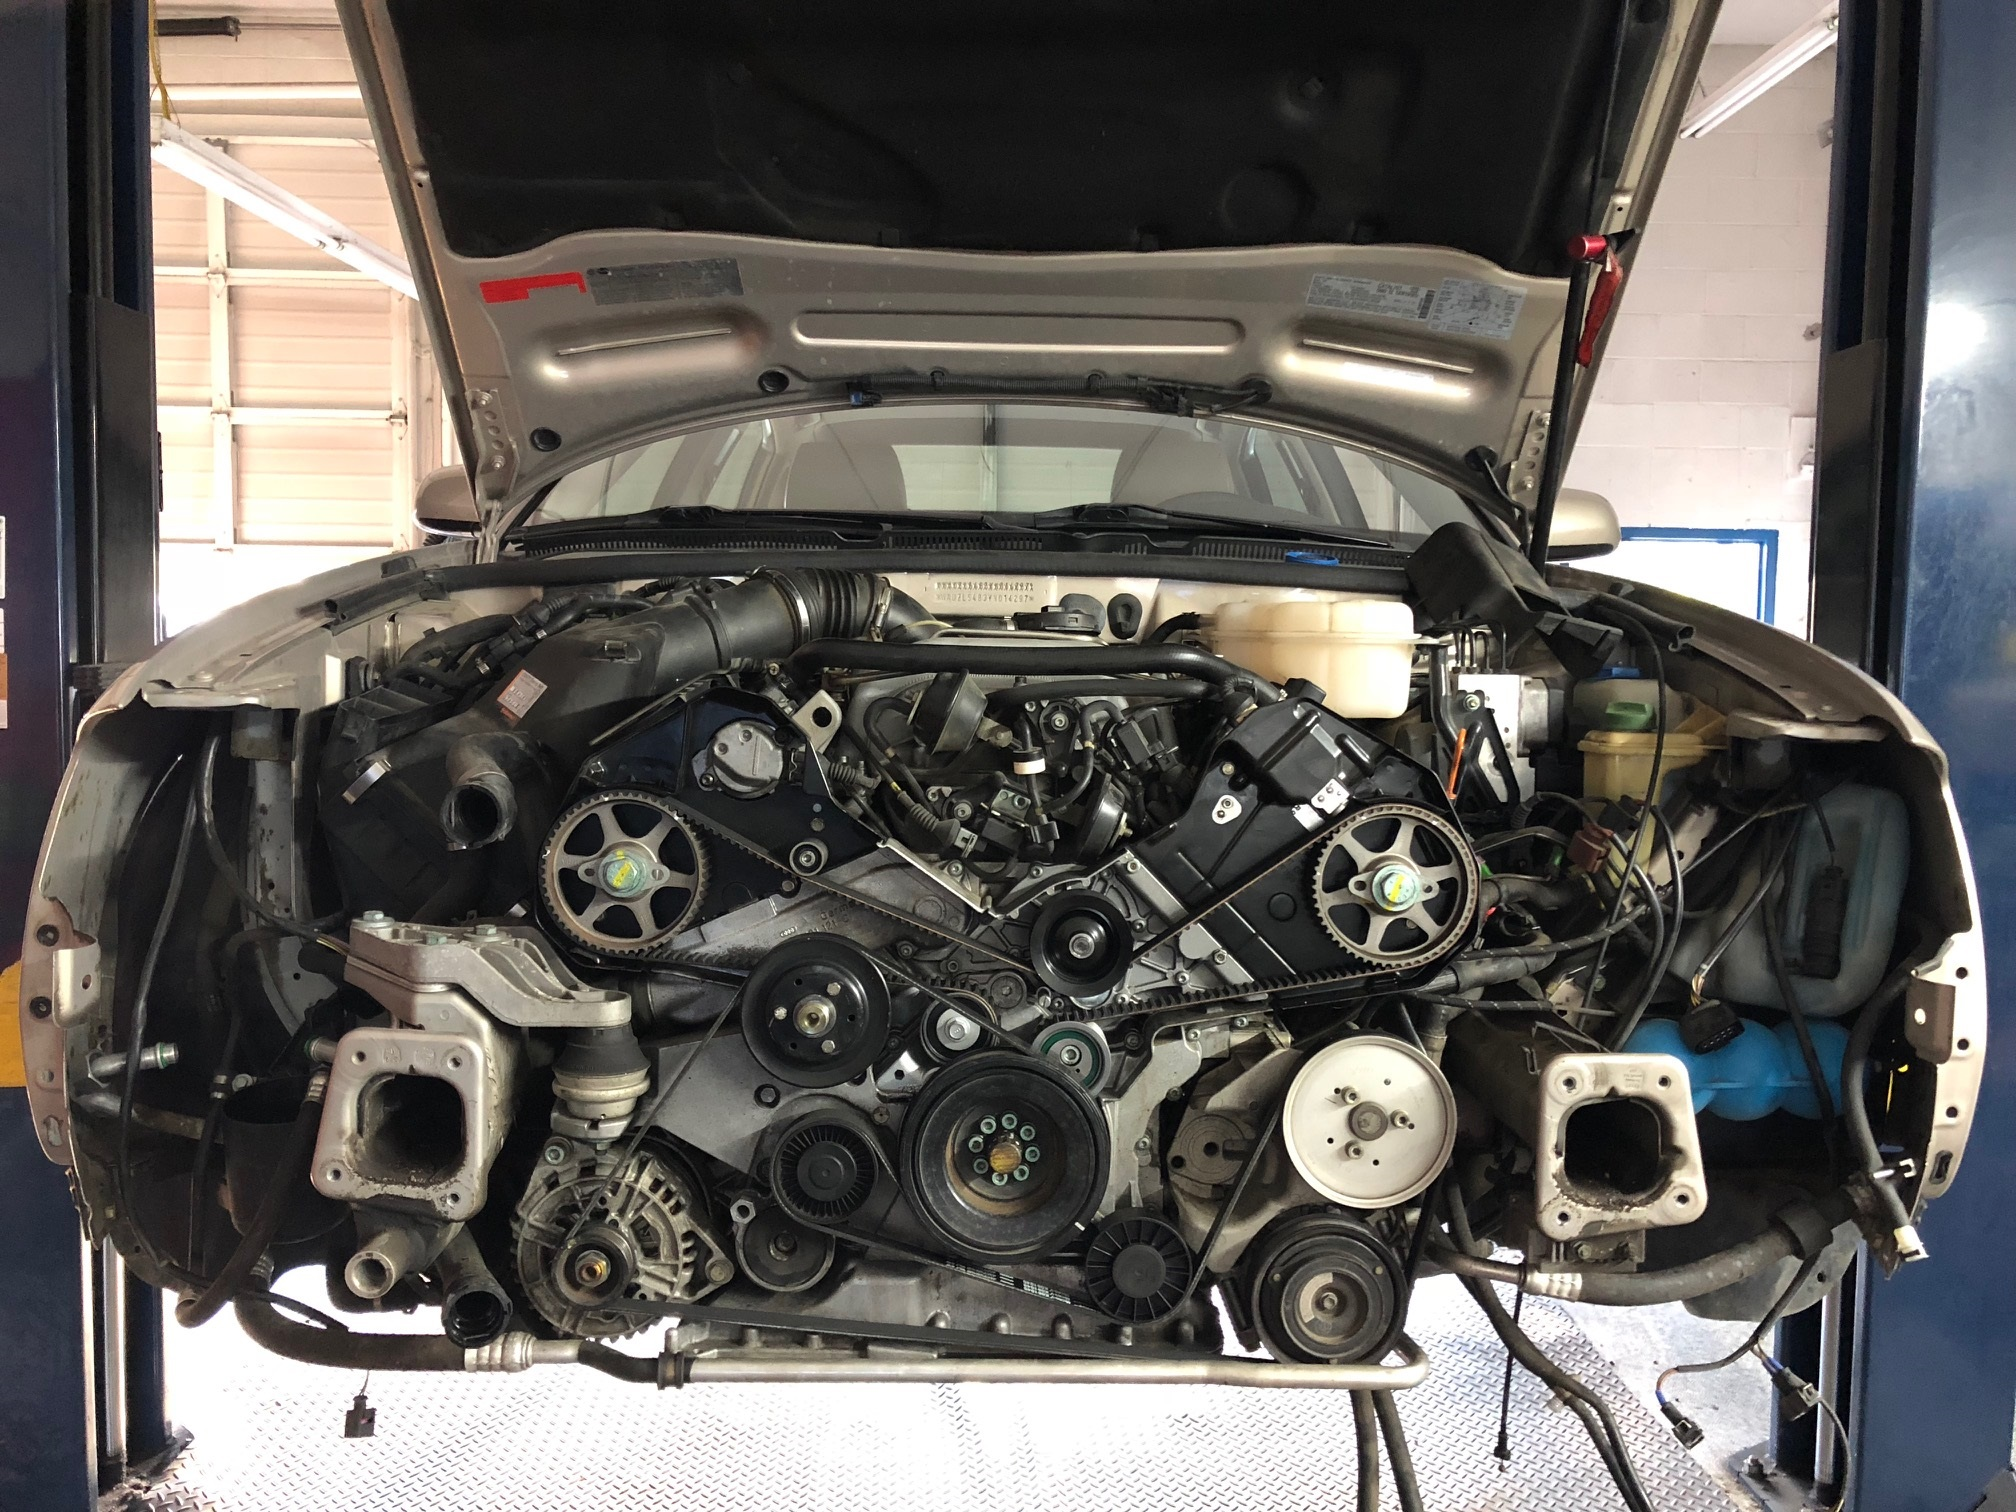 2000 Audi A6 V8 Timing Belt Service | Henry's Auto – Foreign Auto Service  and Sales near Medford, Oregon | Audi Timing Belt |  | Henry's Auto